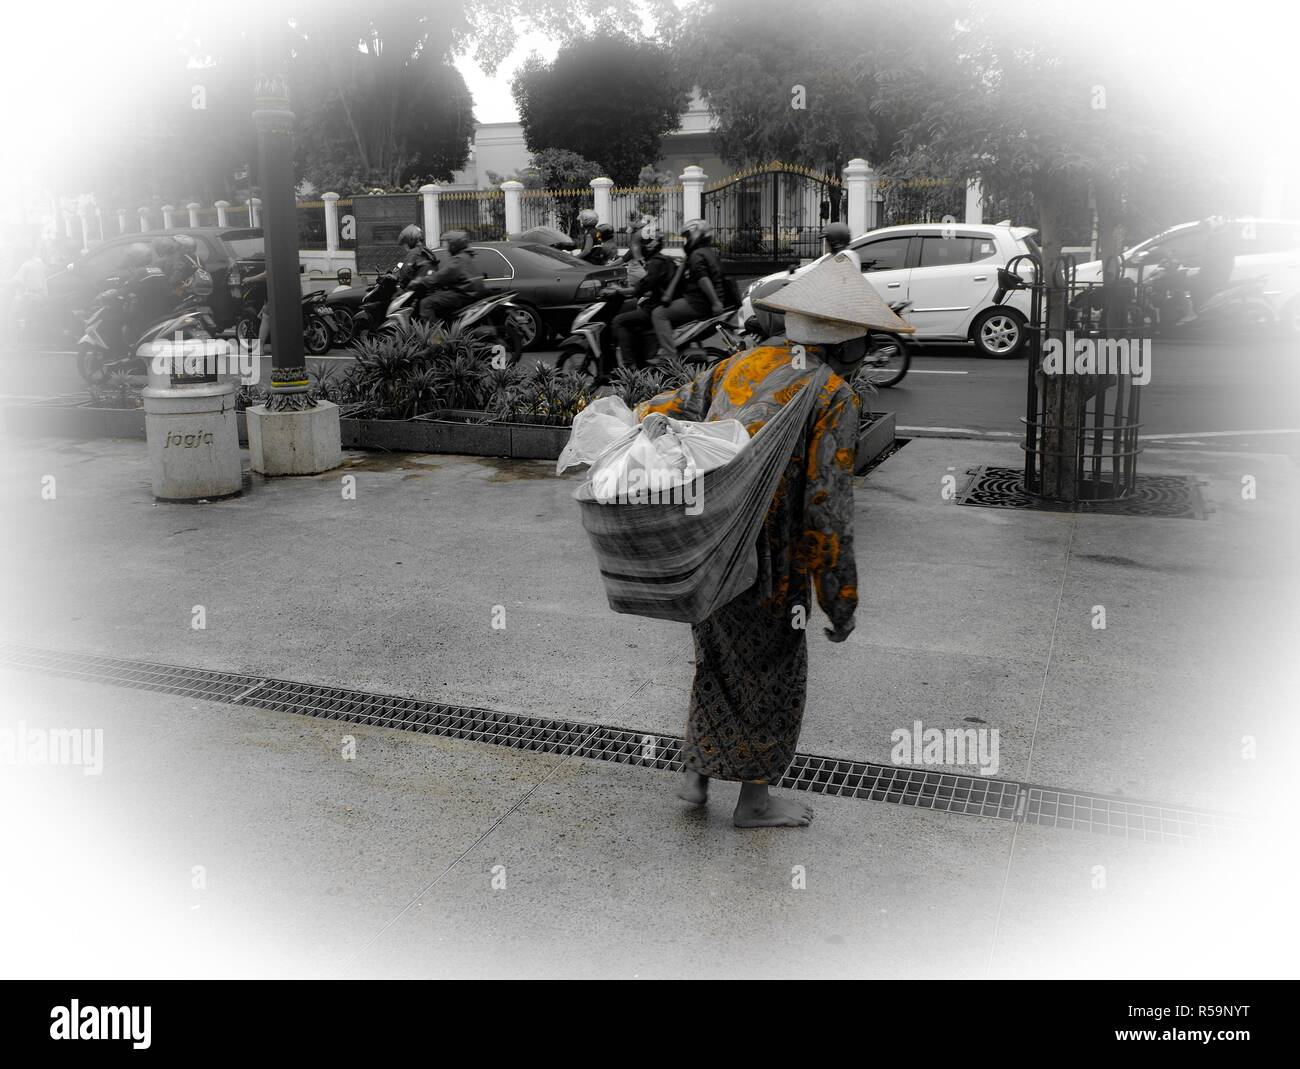 Human interest that depicts the situation in Malioboro, Yogyakarta. The rime when the photo was taken was at late afternoon - Stock Image